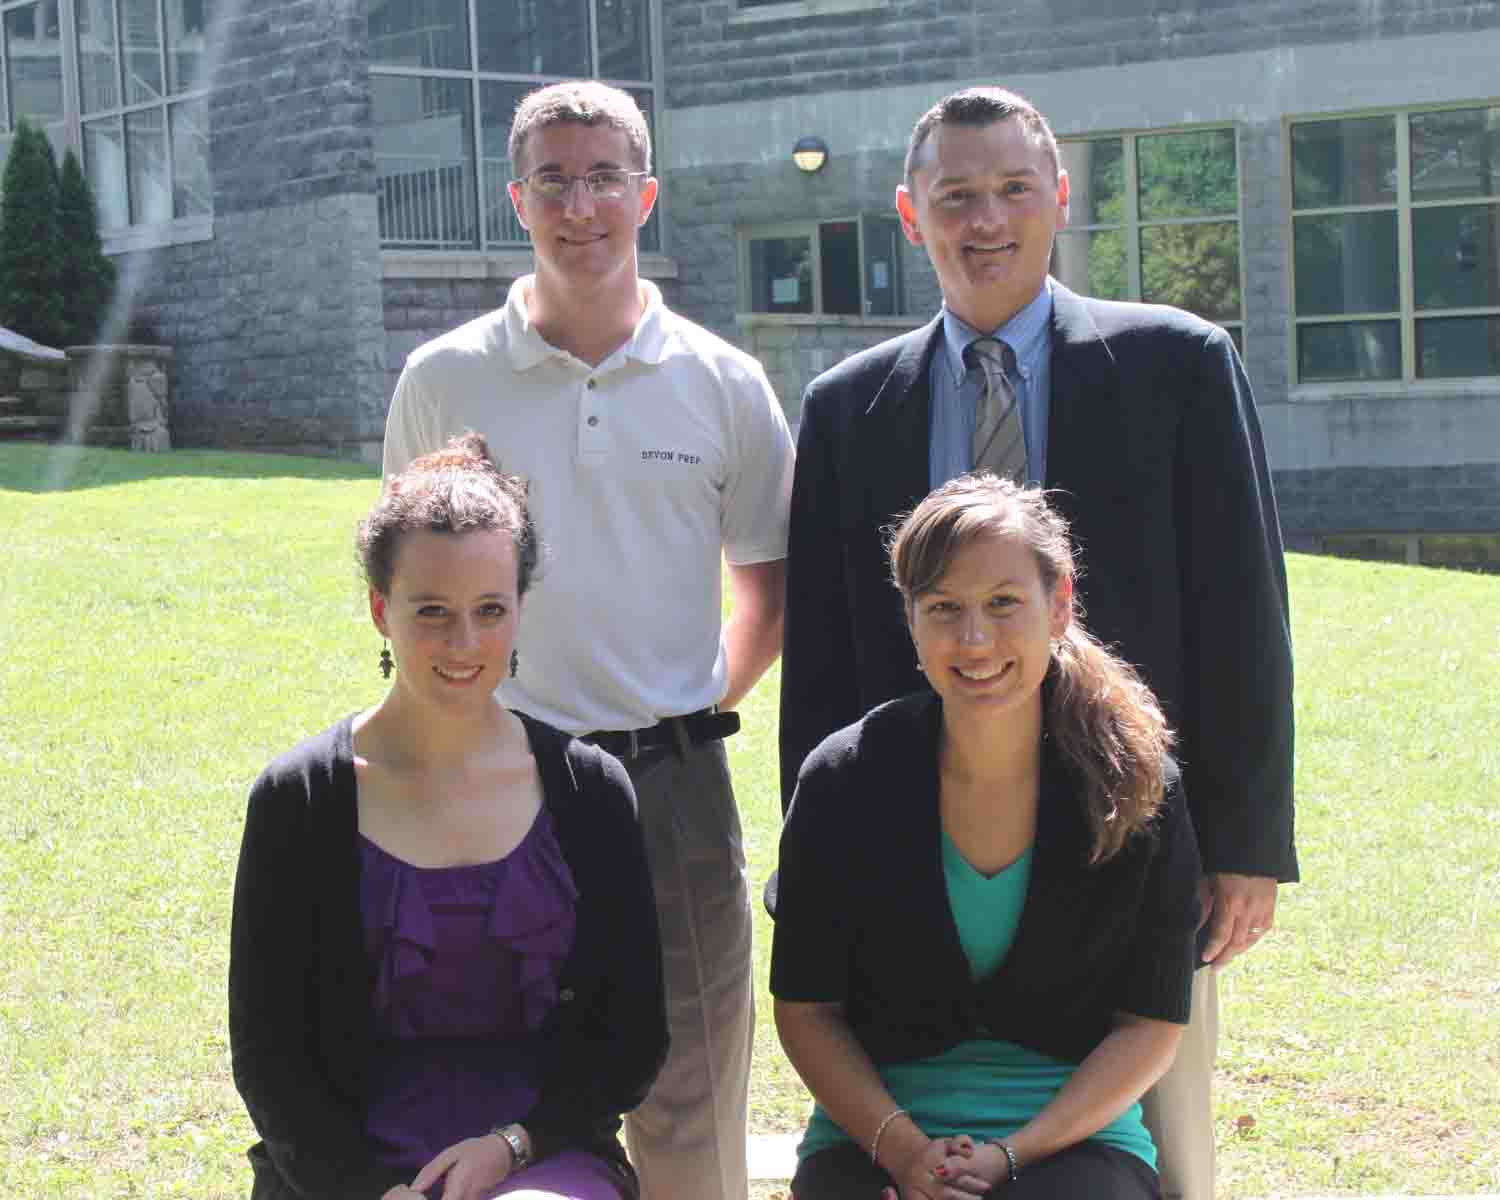 Devon Prep welcomed four new faculty members.